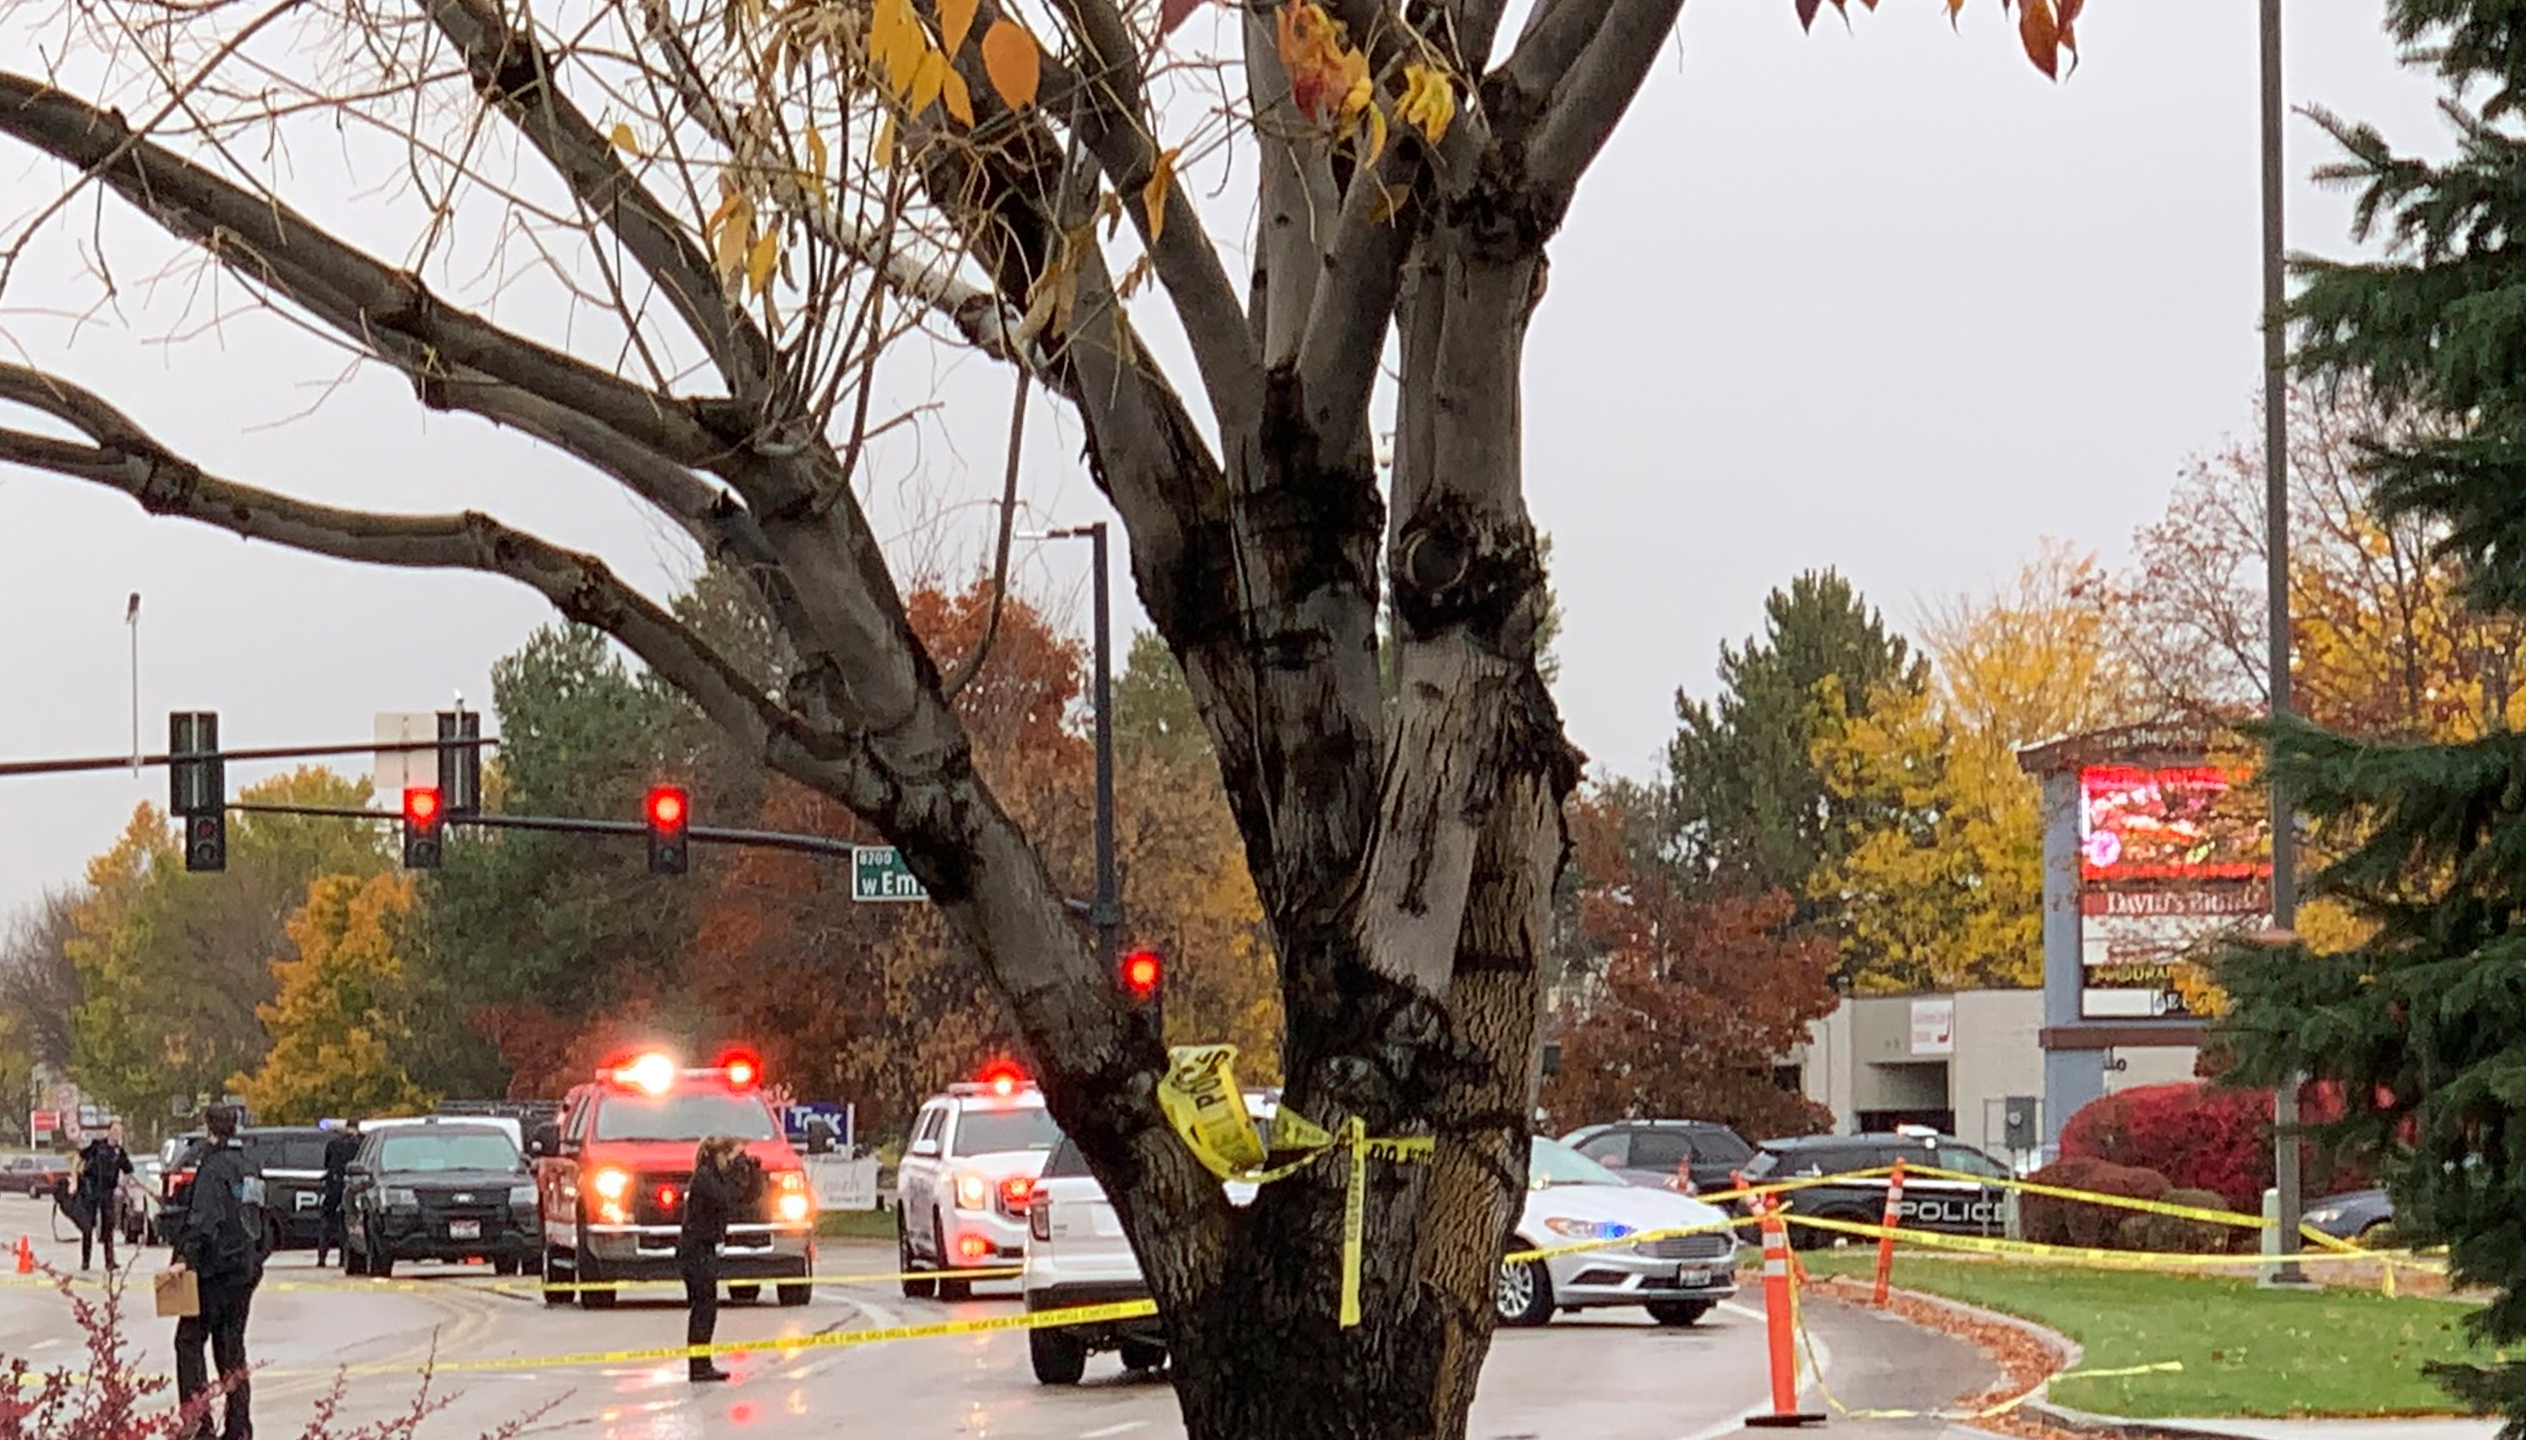 Police close off a street outside a shopping mall after a shooting in Boise, Idaho on Oct. 25, 2021. (Rebecca Boone/Associated Press)